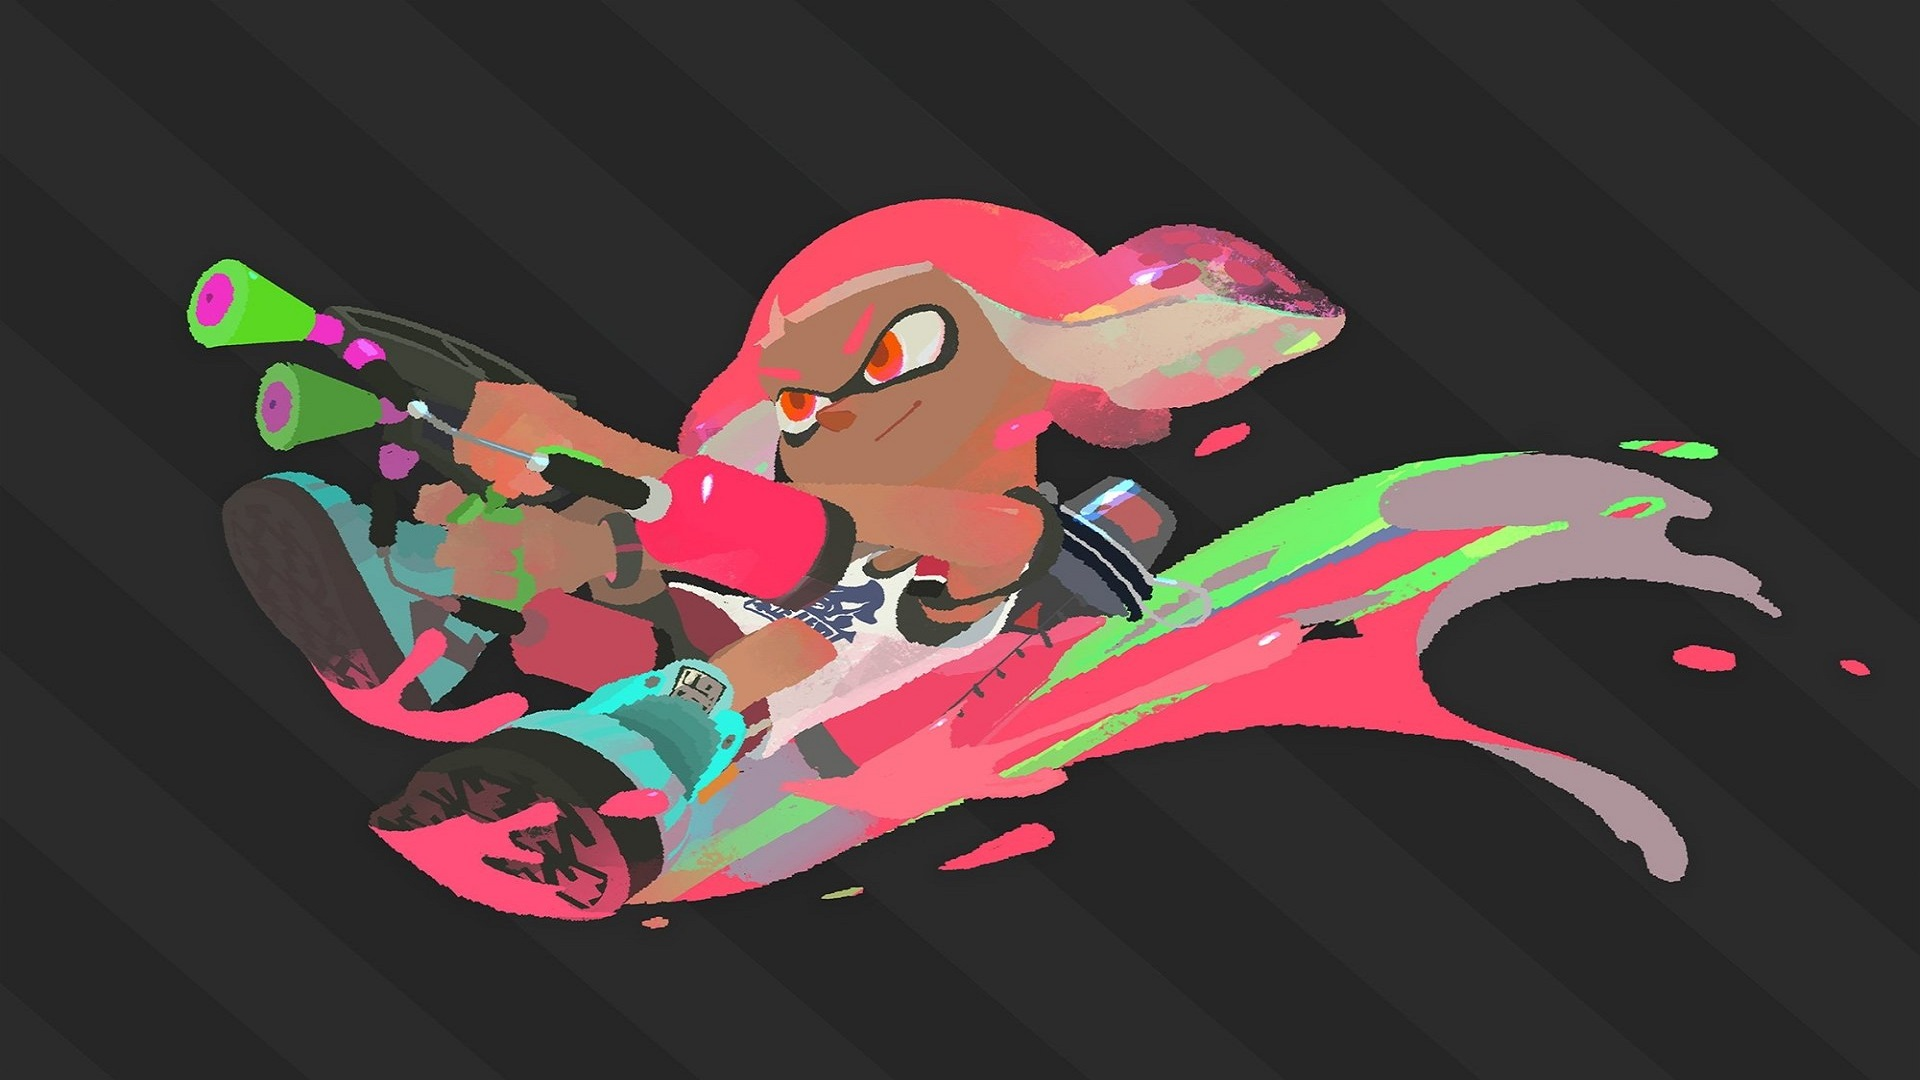 Download Splatoon 2 HD Wallpapers 1920x1080 - Read games review, play online games & download ...